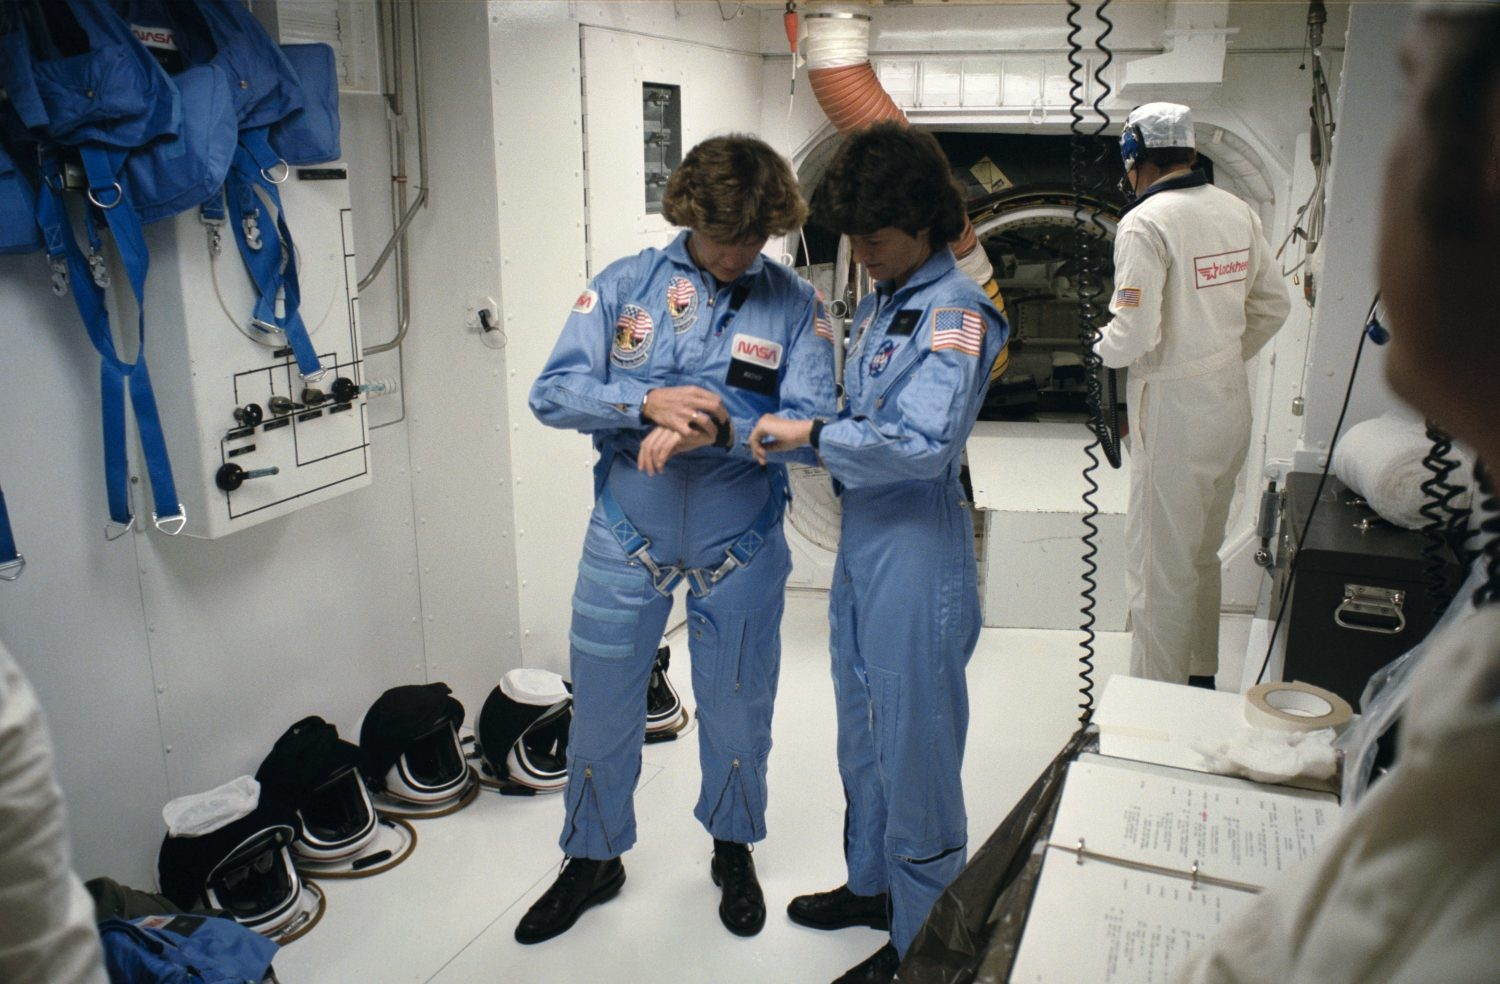 Sullivan (left) pictured with fellow NASA astronaut Sally Ride (right). The two astronauts are synching their watches before the launch of Shuttle mission STS-41G on 5 October 1984. The mission was the first flight to carry two women into space. Credit: NASA